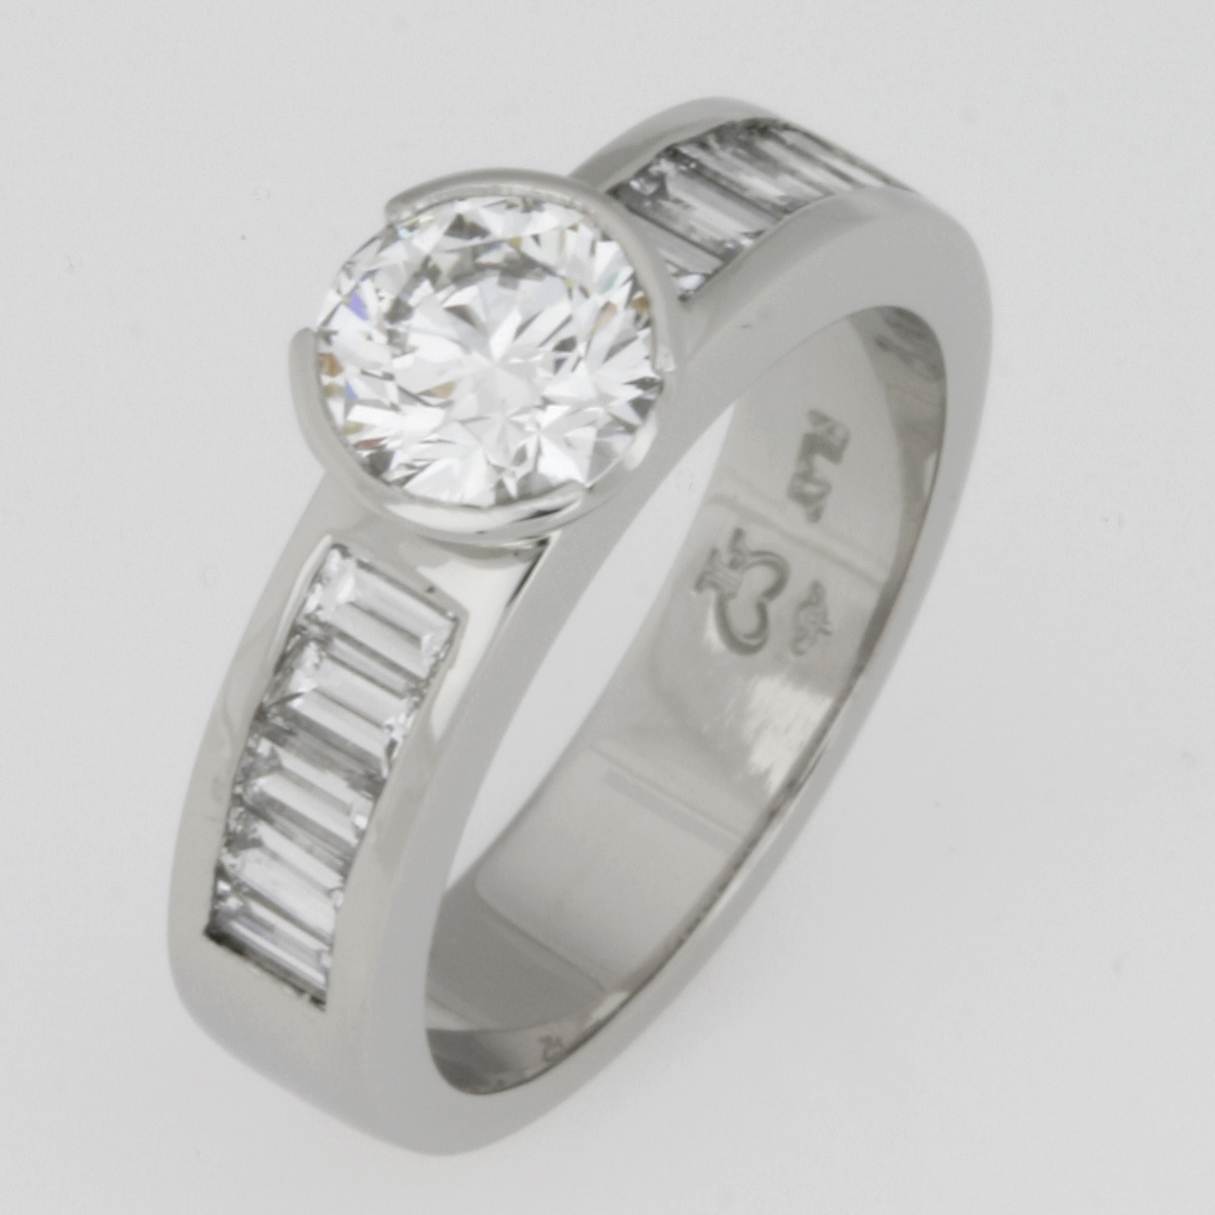 Handmade ladies platinum engagement ring featuring a brilliant cut diamond baguette diamonds